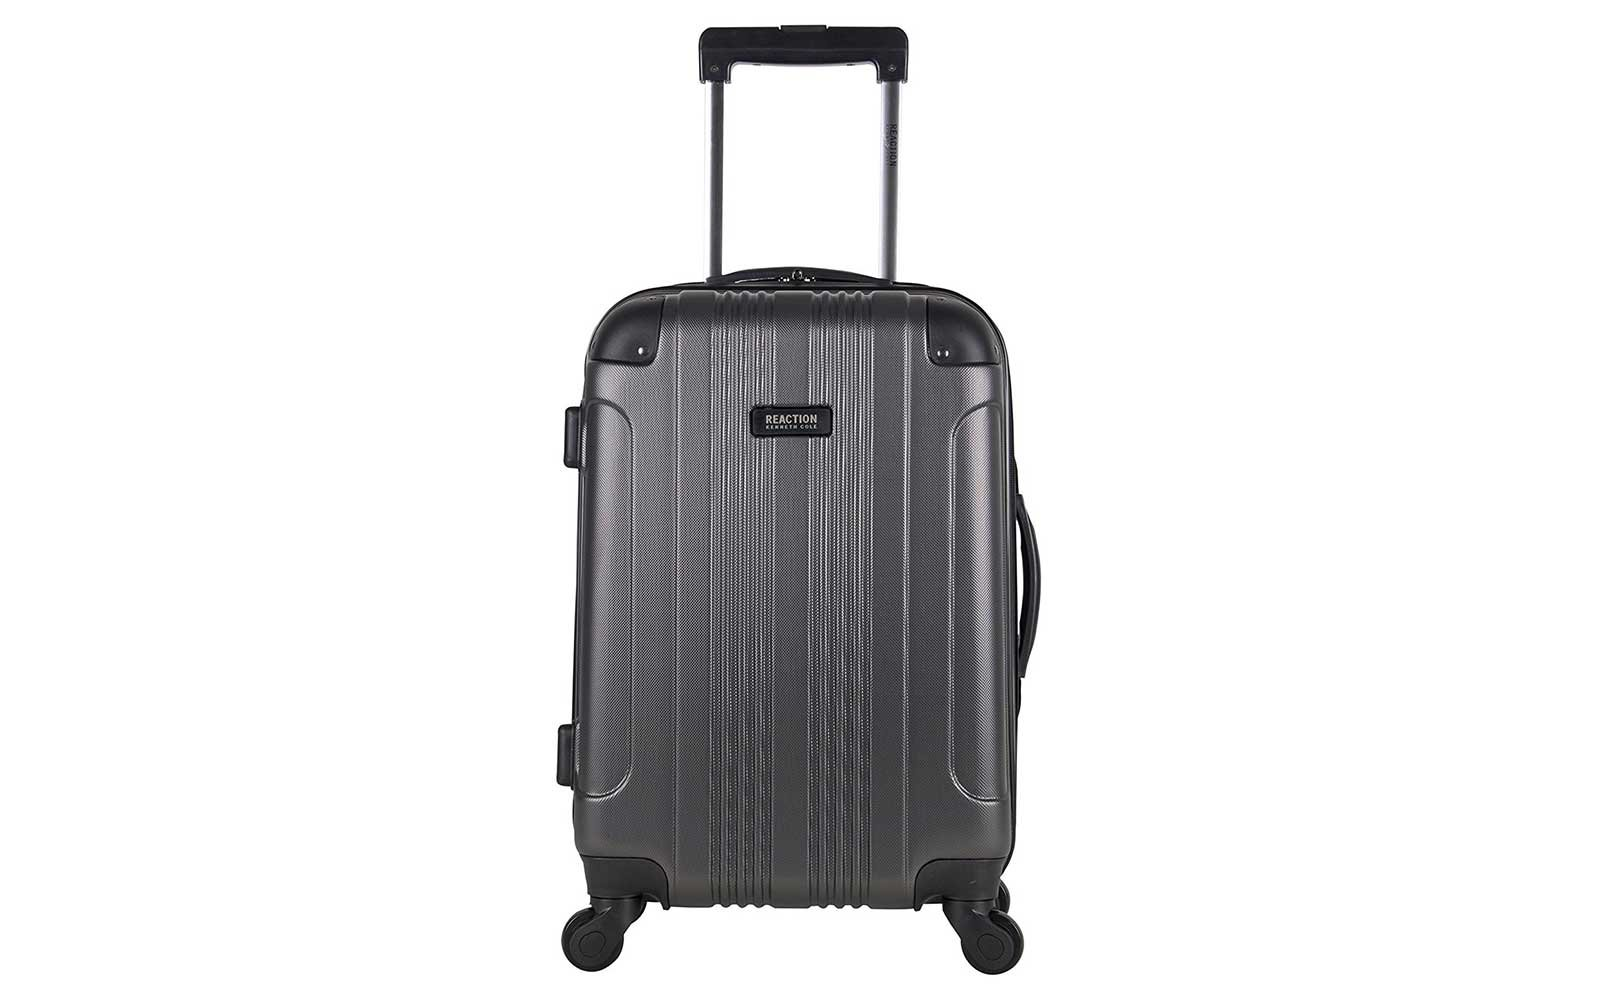 Kenneth Cole Reaction Out Of Bounds 20 Inch Carry On